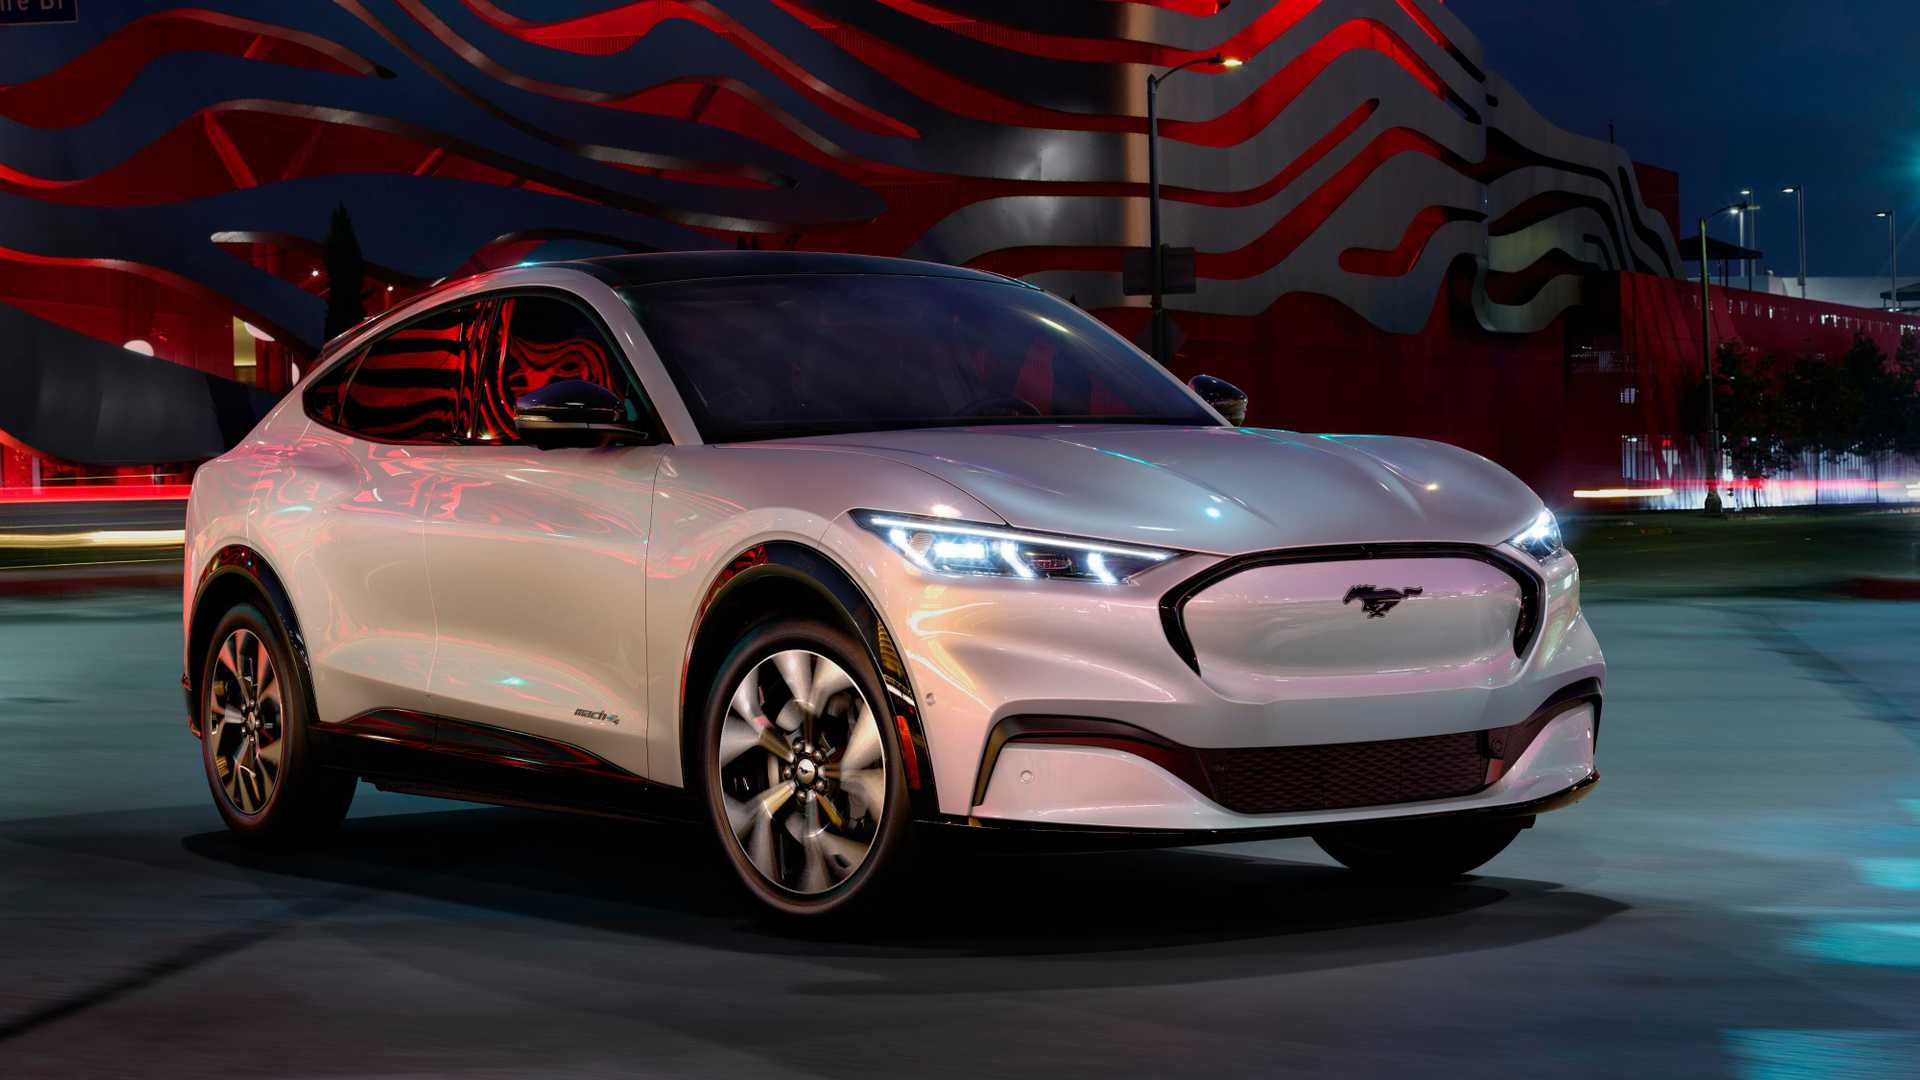 Ford has conducted a series of tests and concluded that its newest electric SUV – the Mustang Mach-E – refills its batteries considerably faster than simulations predicted, and runs longer.